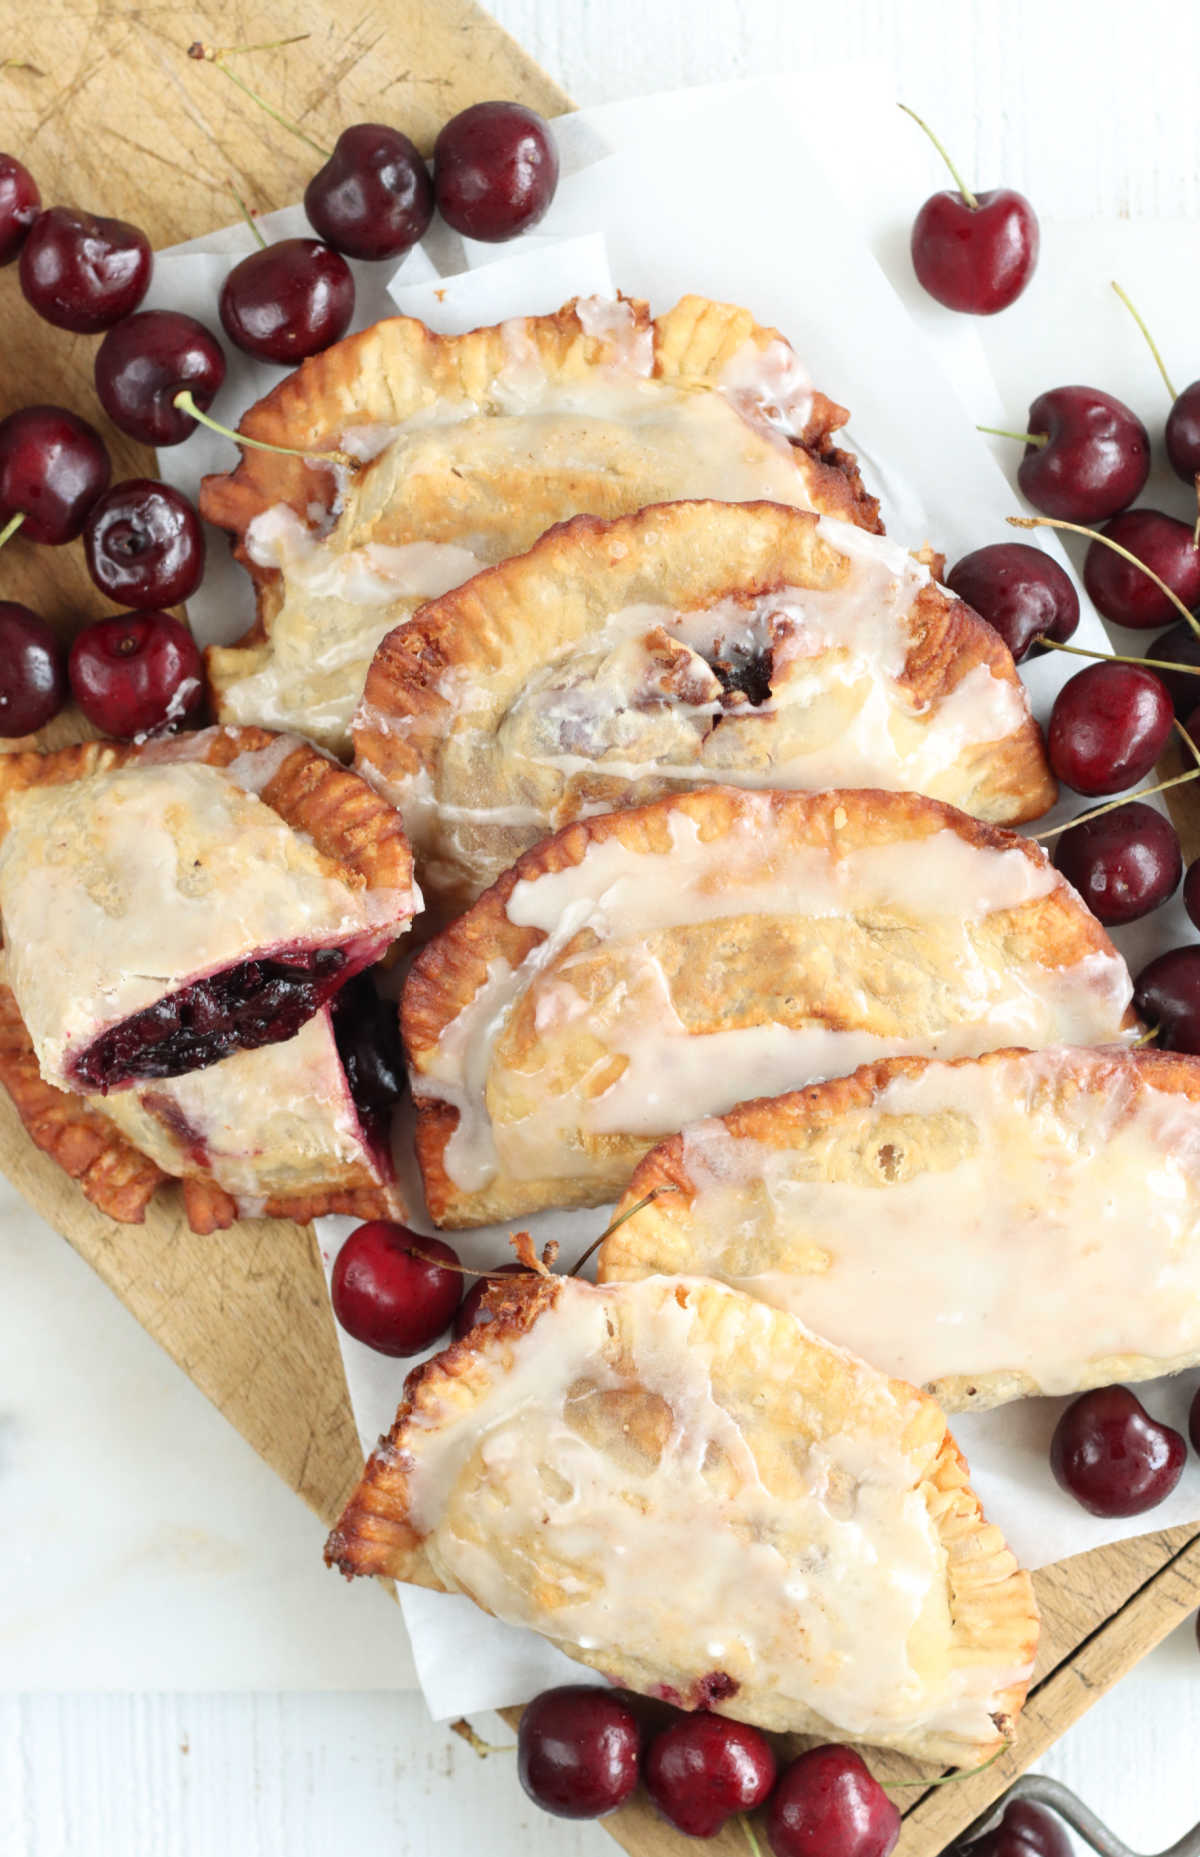 Cherry pies leaning on each other on wooden cutting board, fresh cherries around.